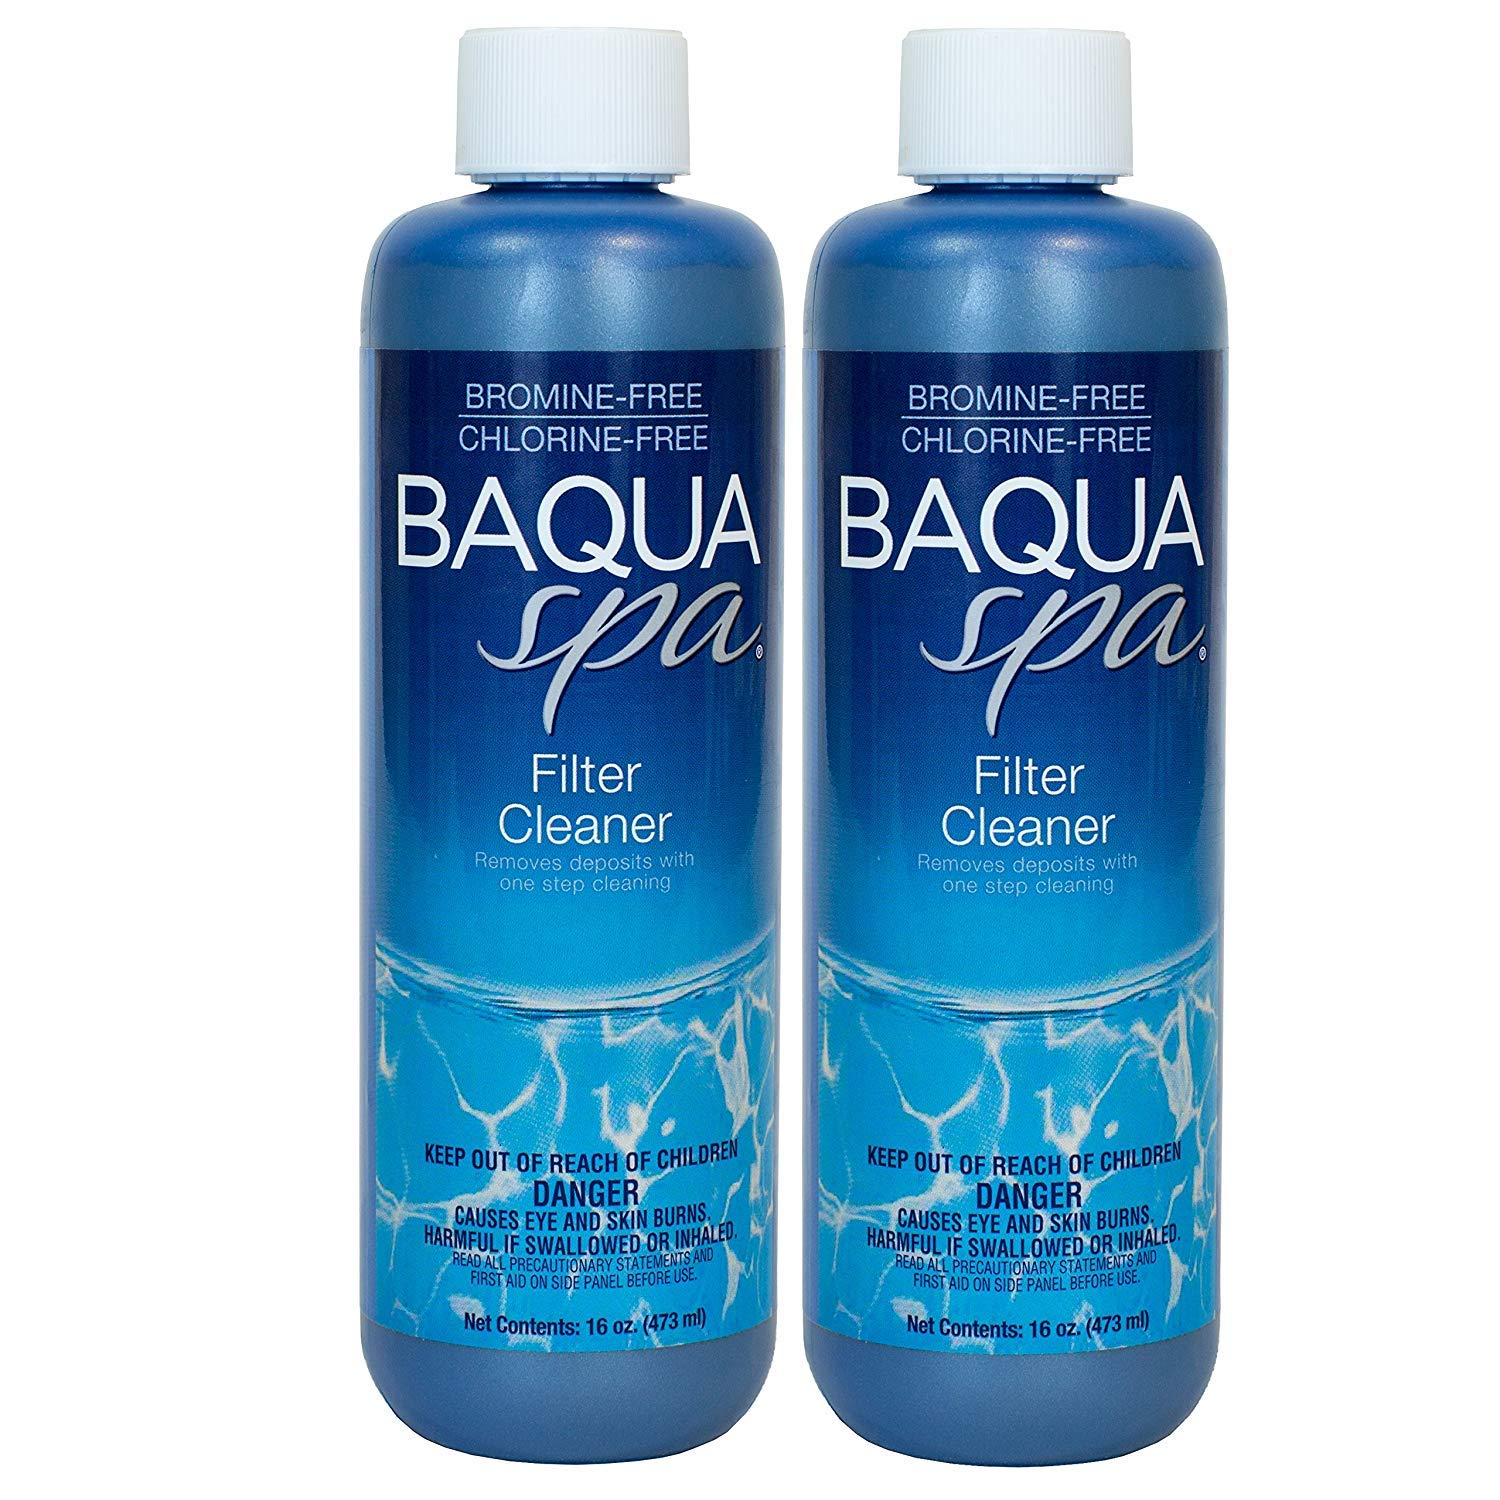 Baqua Spa 40803 Filter Cleaner Spa Maintenance, Clear